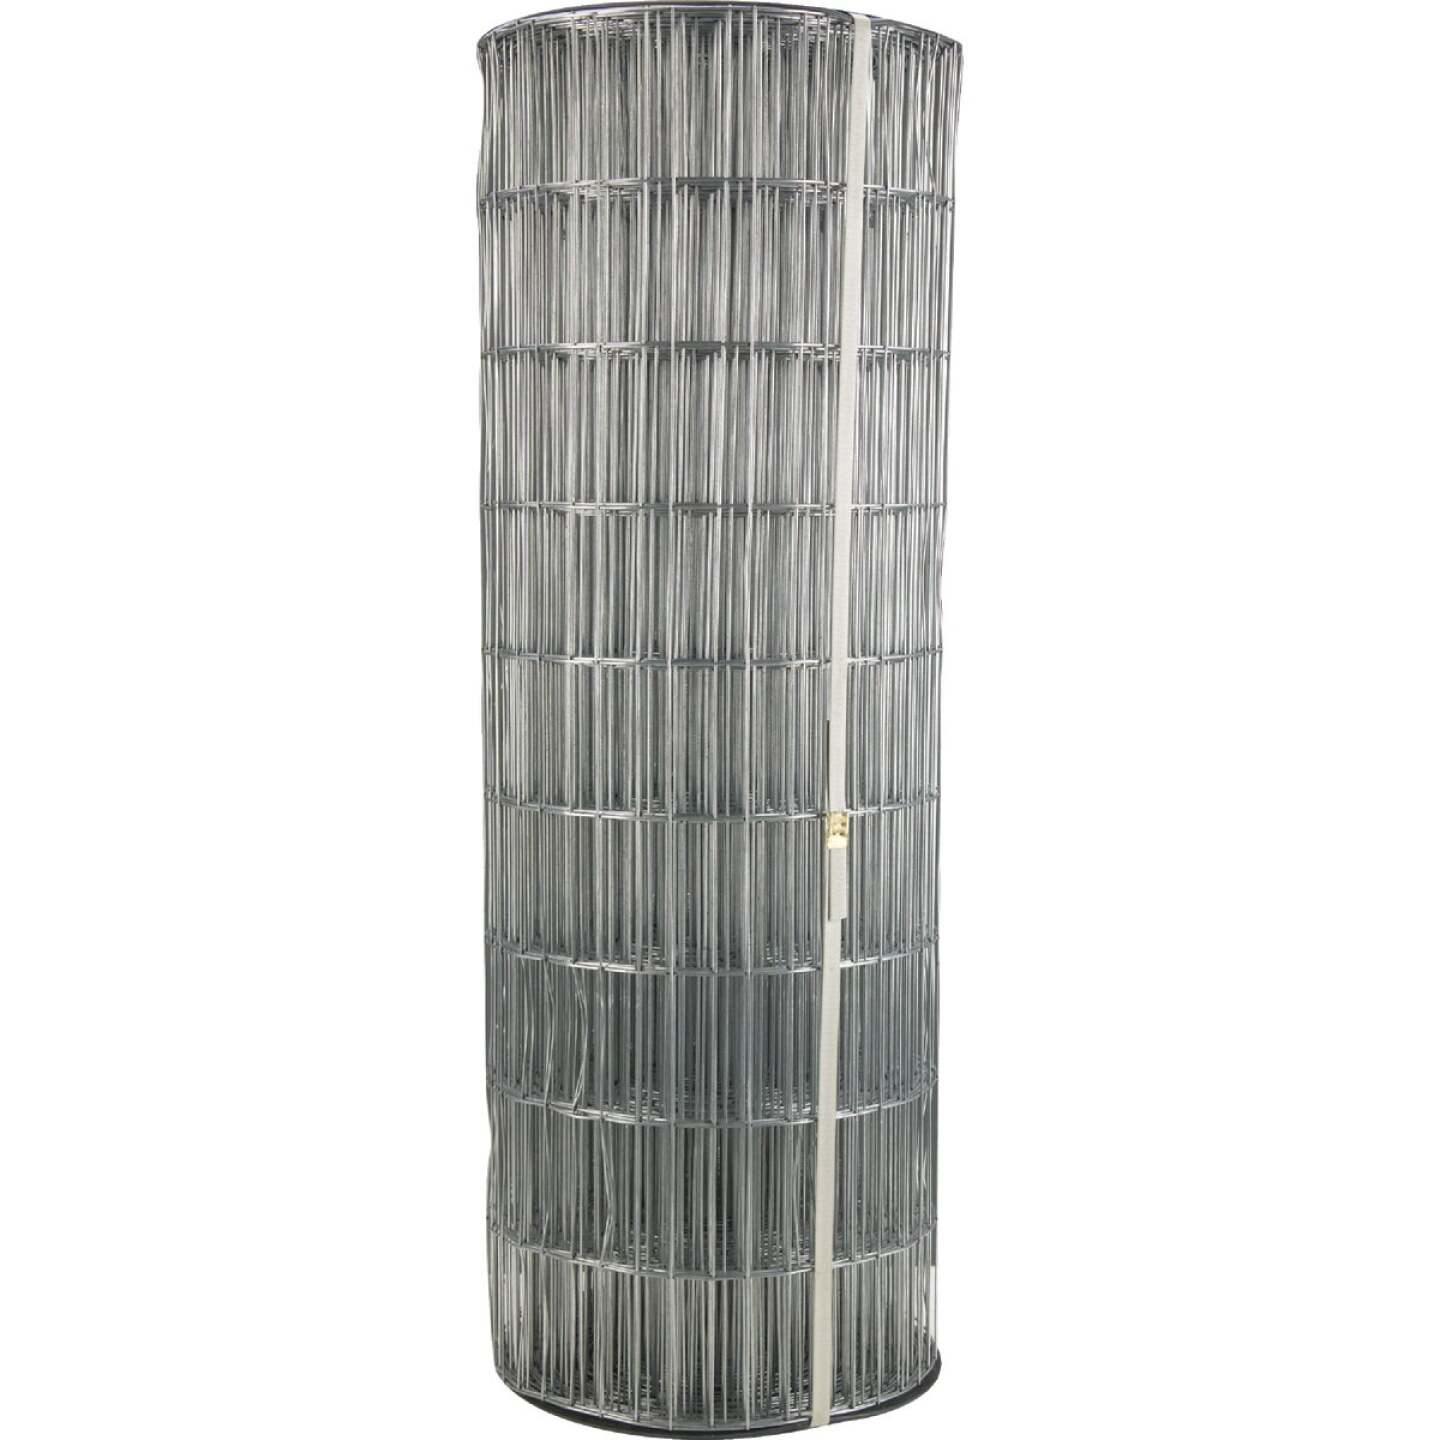 48 In. H. x 100 Ft. L. (2x4) Galvanized Welded Wire Fence Image 1